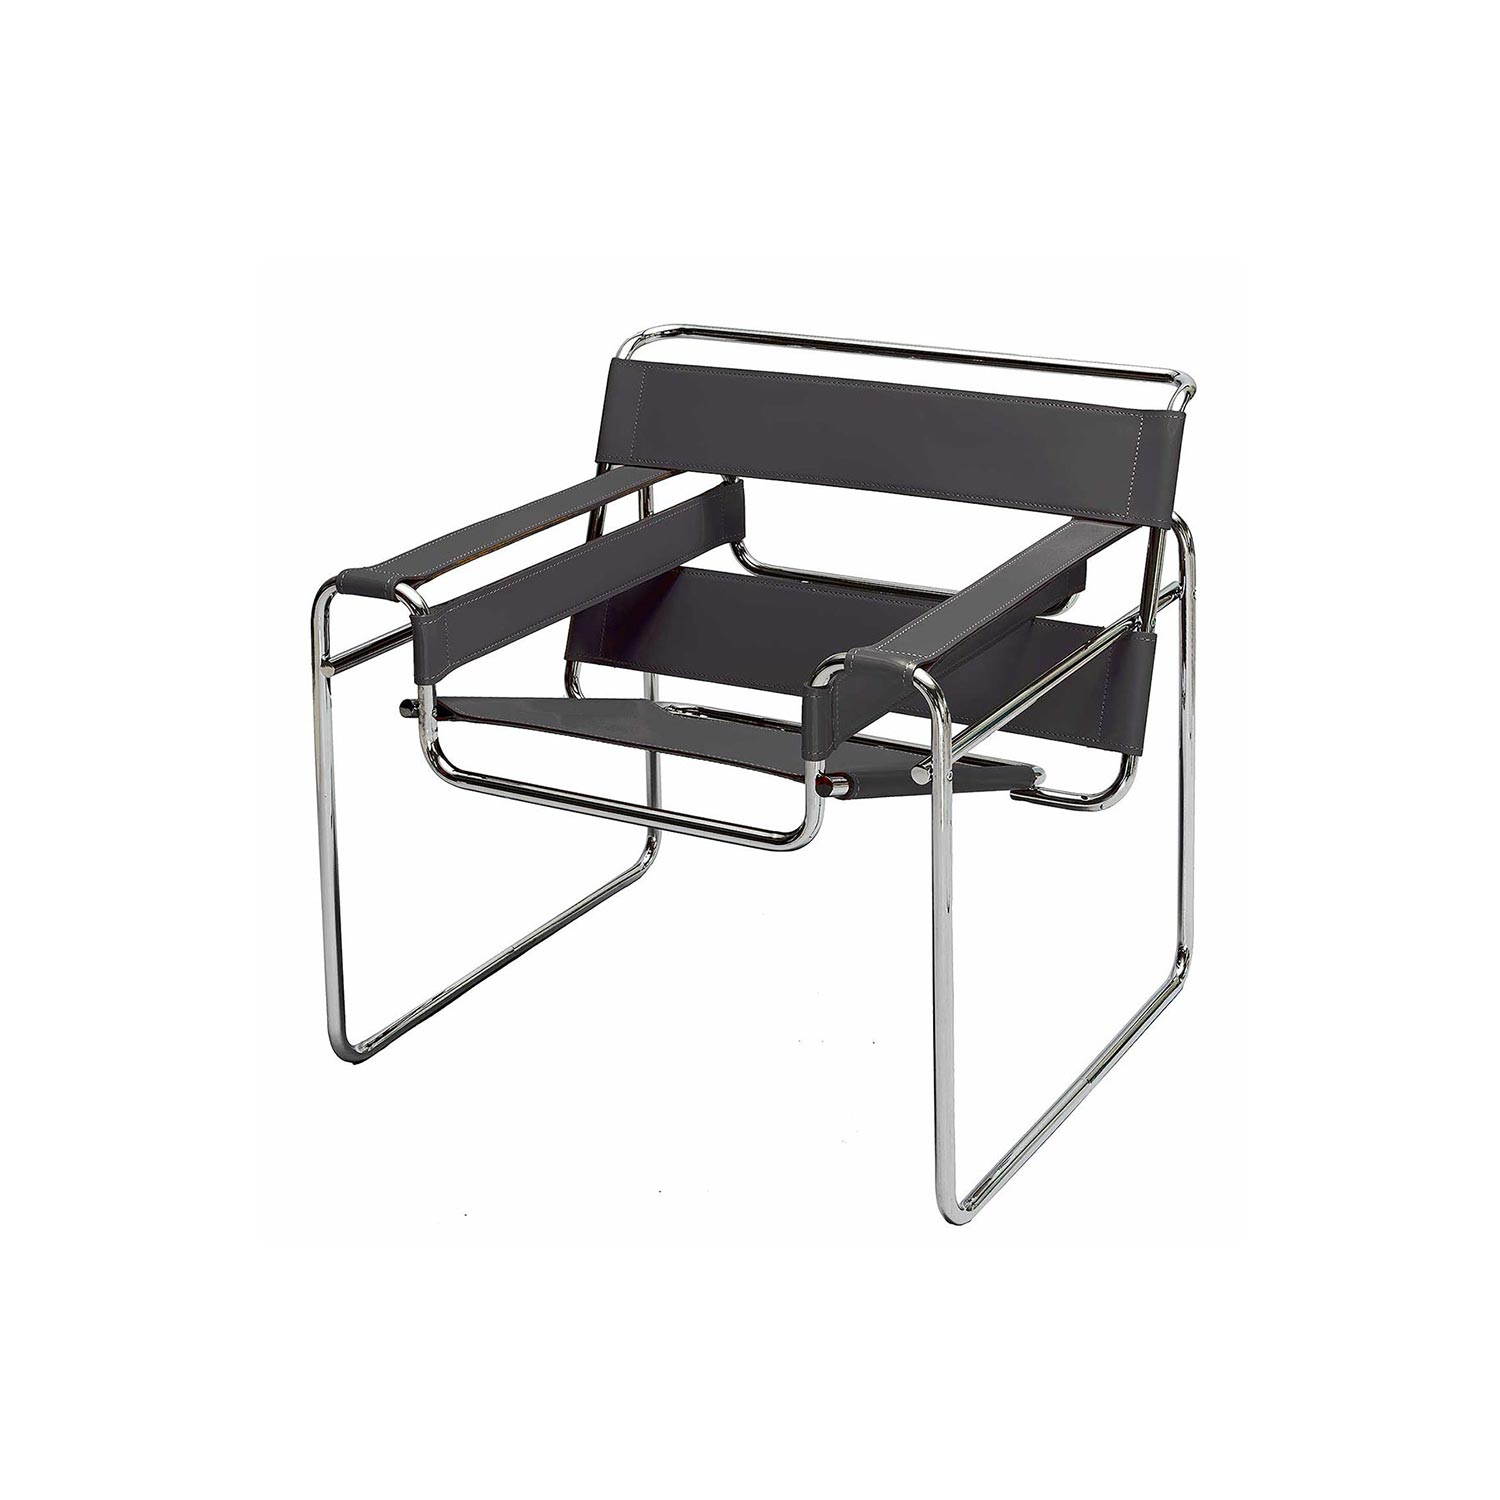 wassily chair designed by marcel breuer steelform design classics. Black Bedroom Furniture Sets. Home Design Ideas